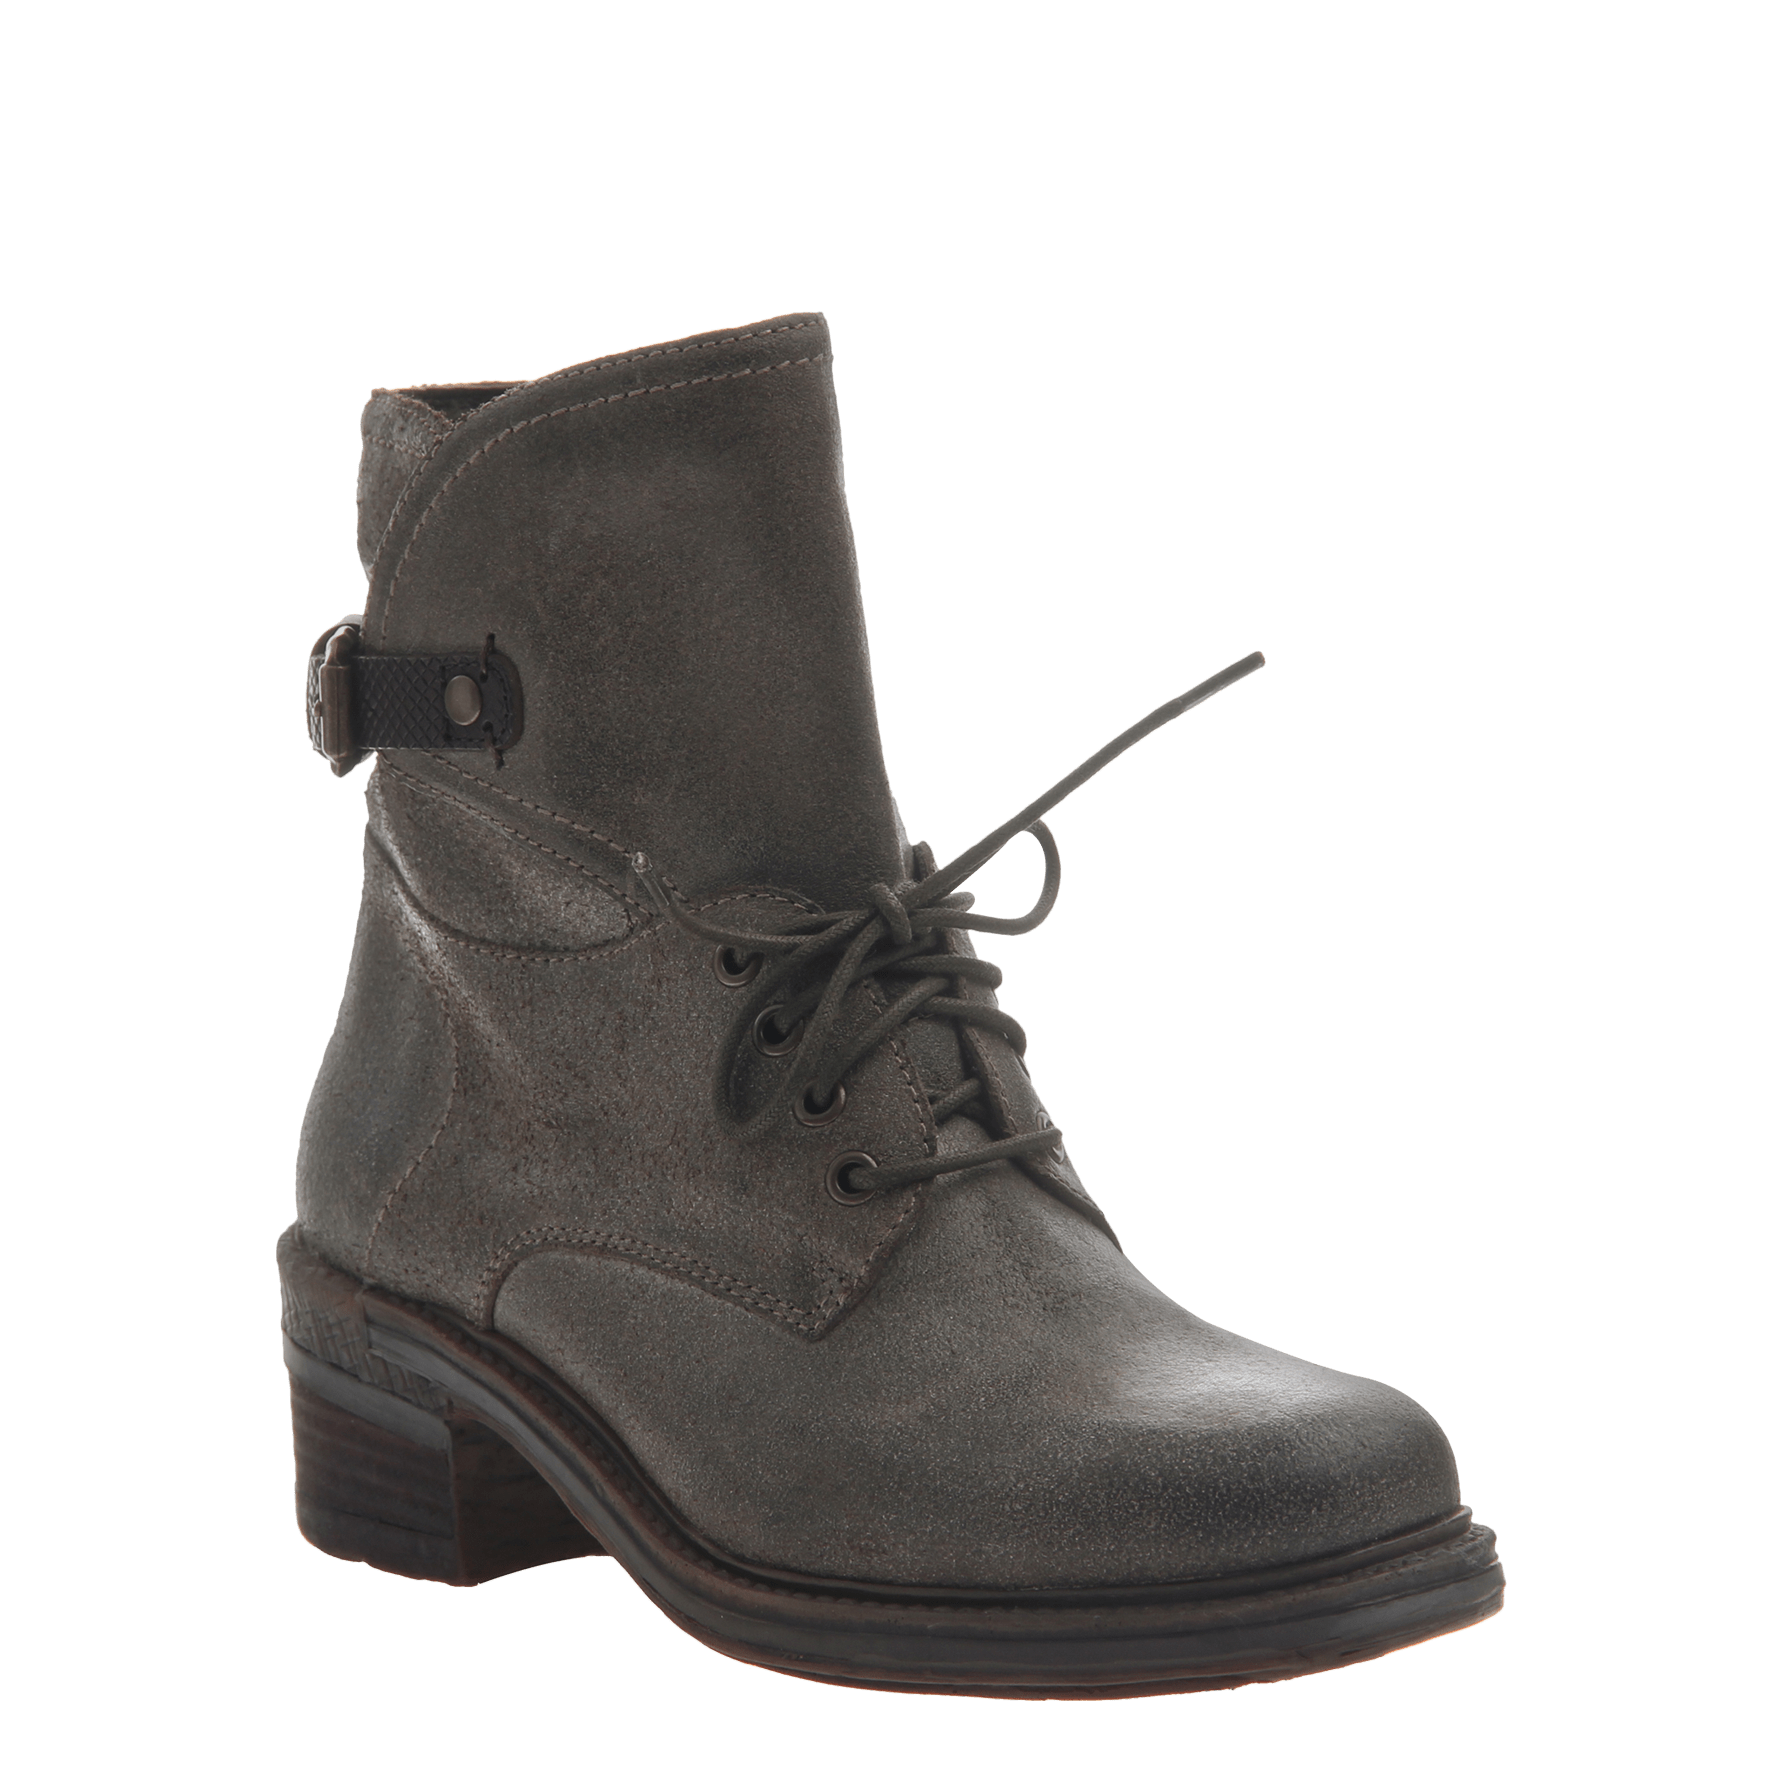 Gallivant women's boot in mint